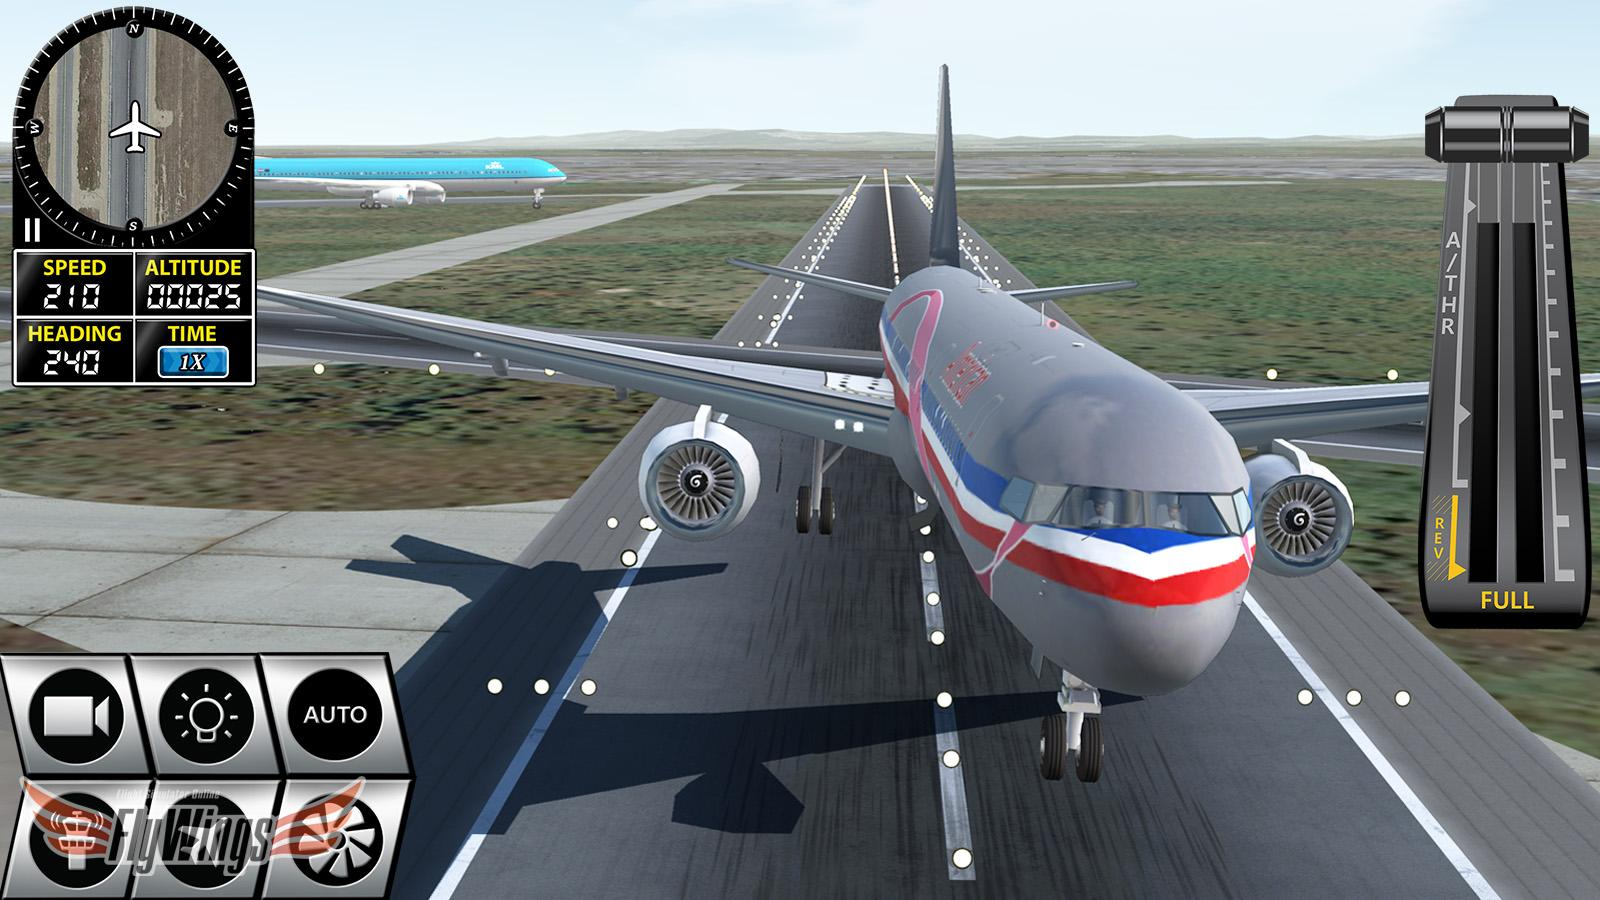 Flight Simulator X Wallpaper: Flight Simulator X 2016 Free